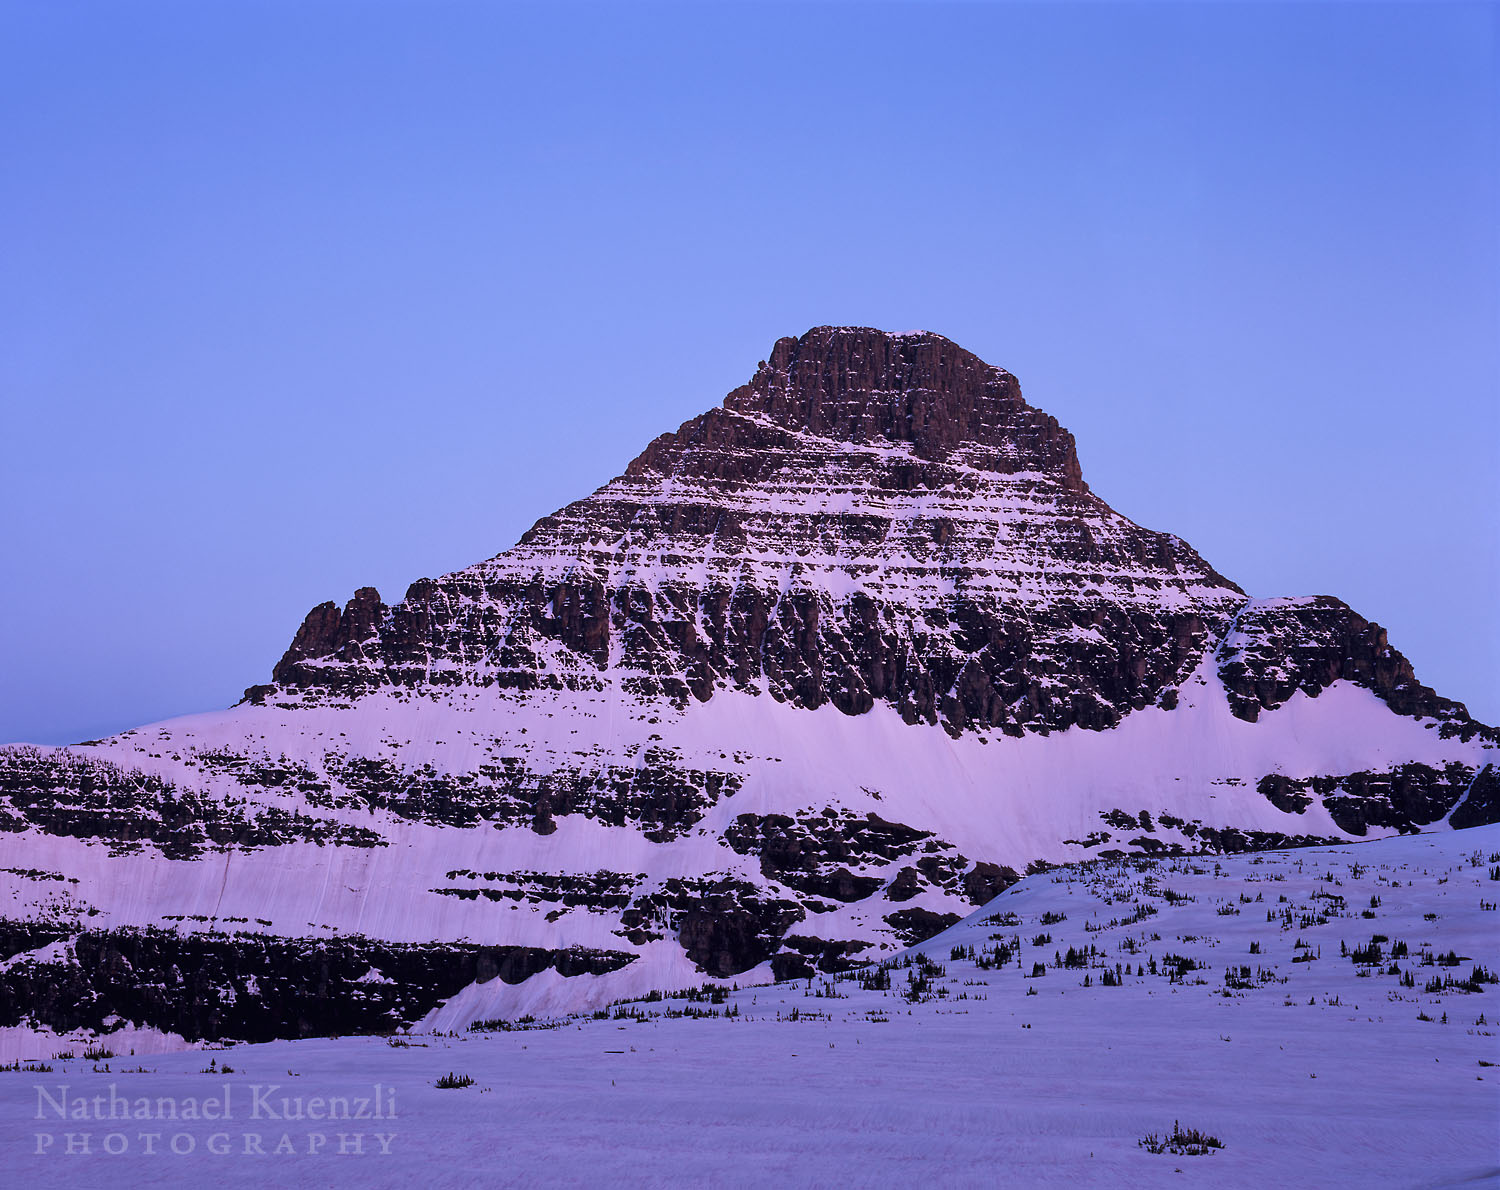 Reynolds Mountain, Glacier National Park, Montana, June 2004